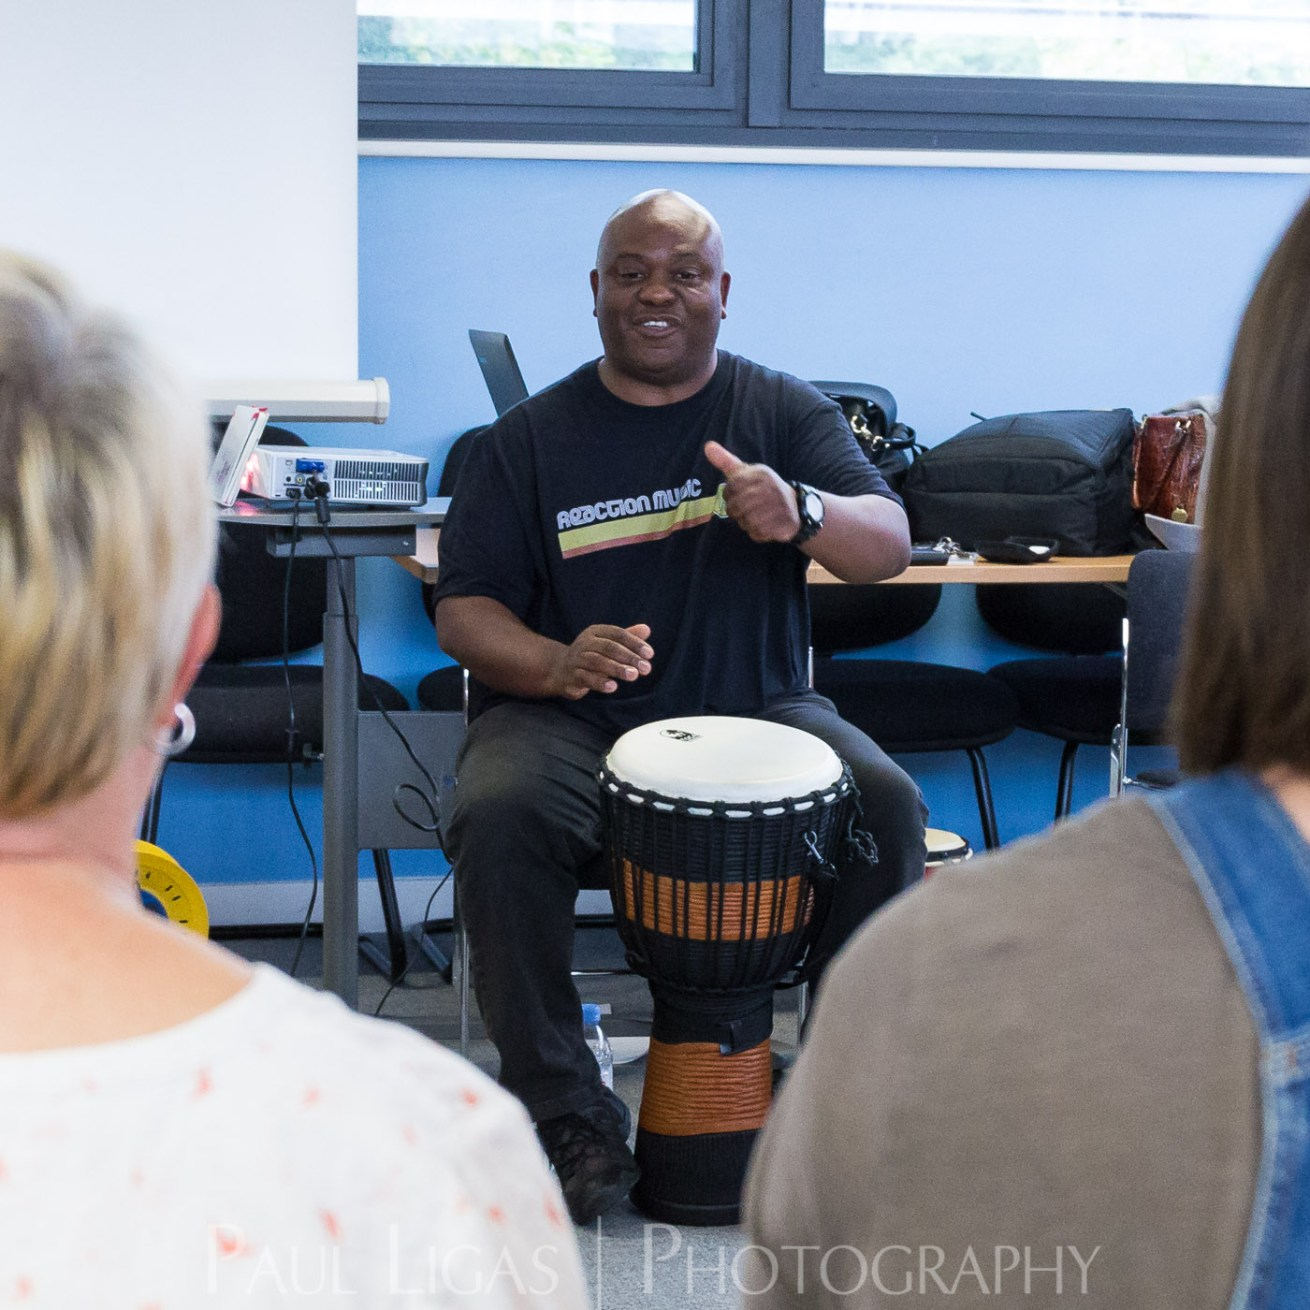 Reaction Music, Hereford, Herefordshire people event photographer photography 9636